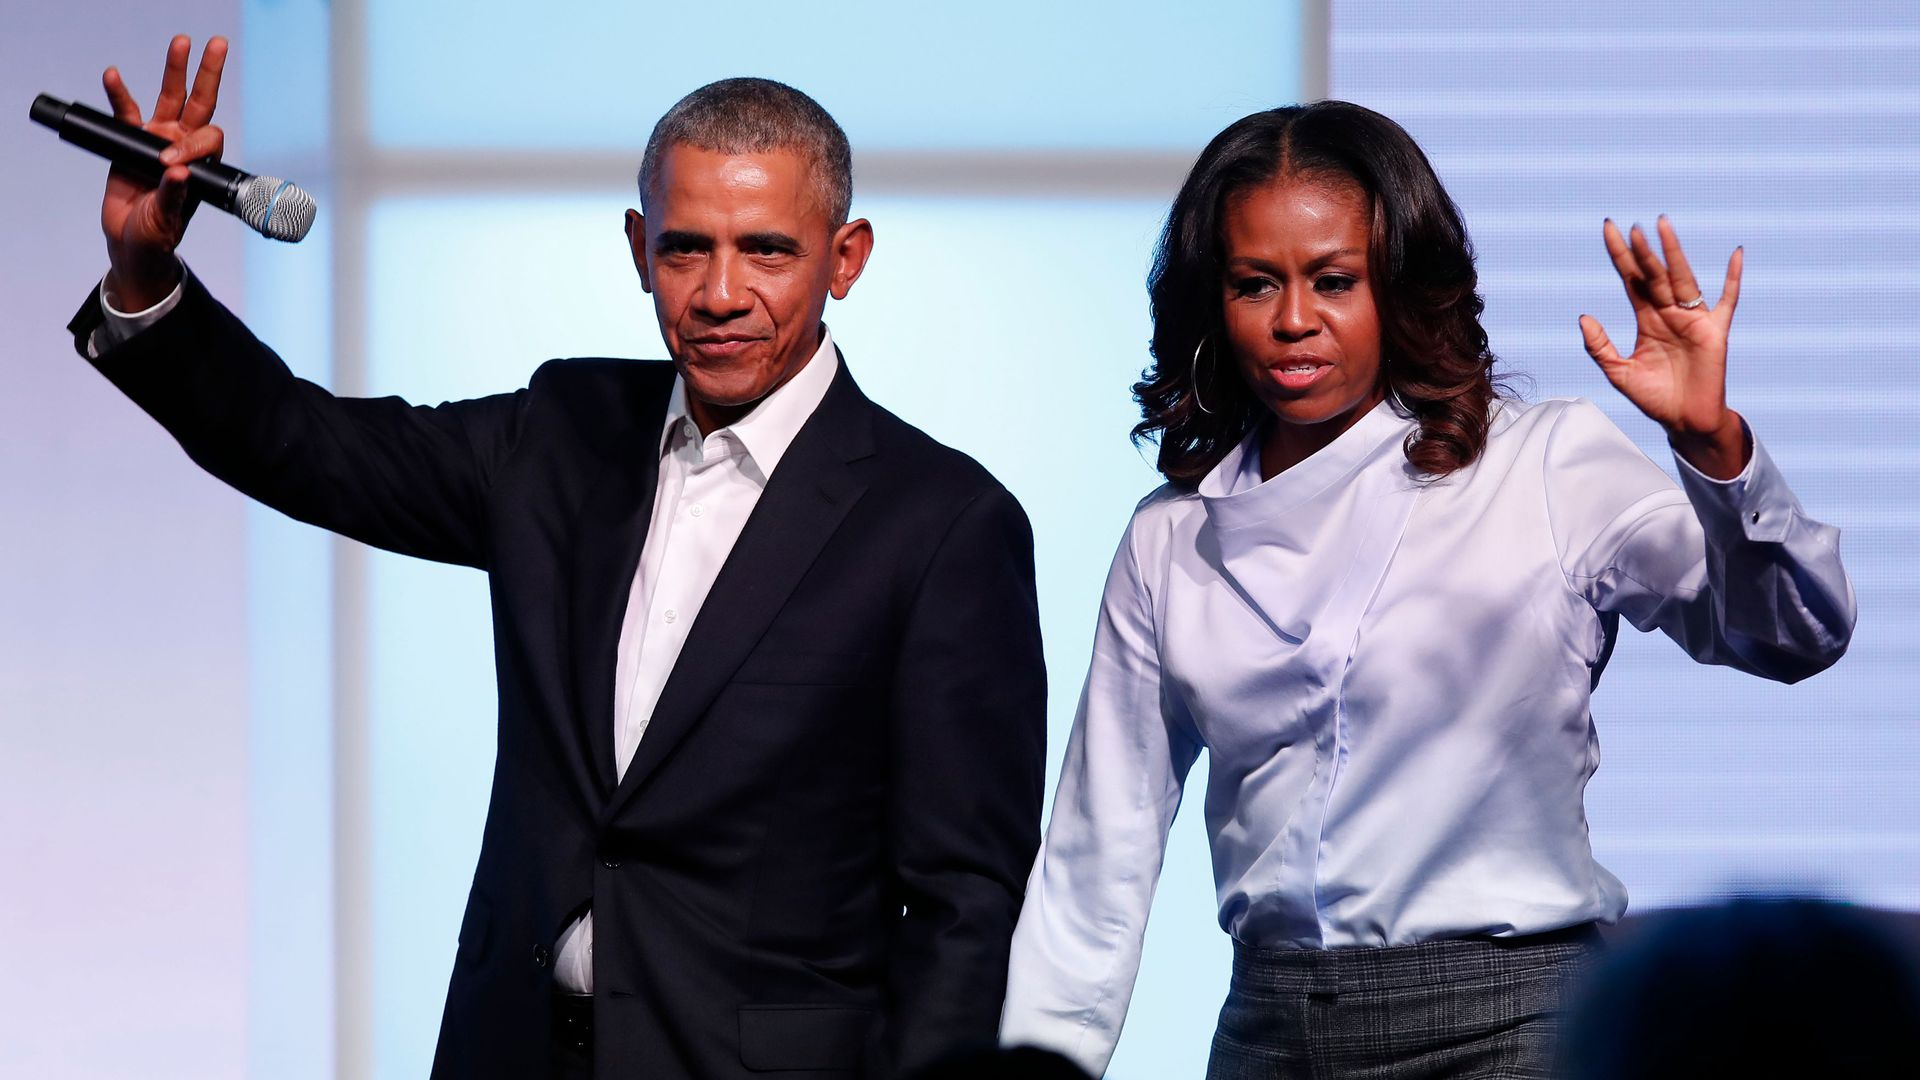 Barack and Michelle Obama wave to the crowd at the Obama Foundation Summit.